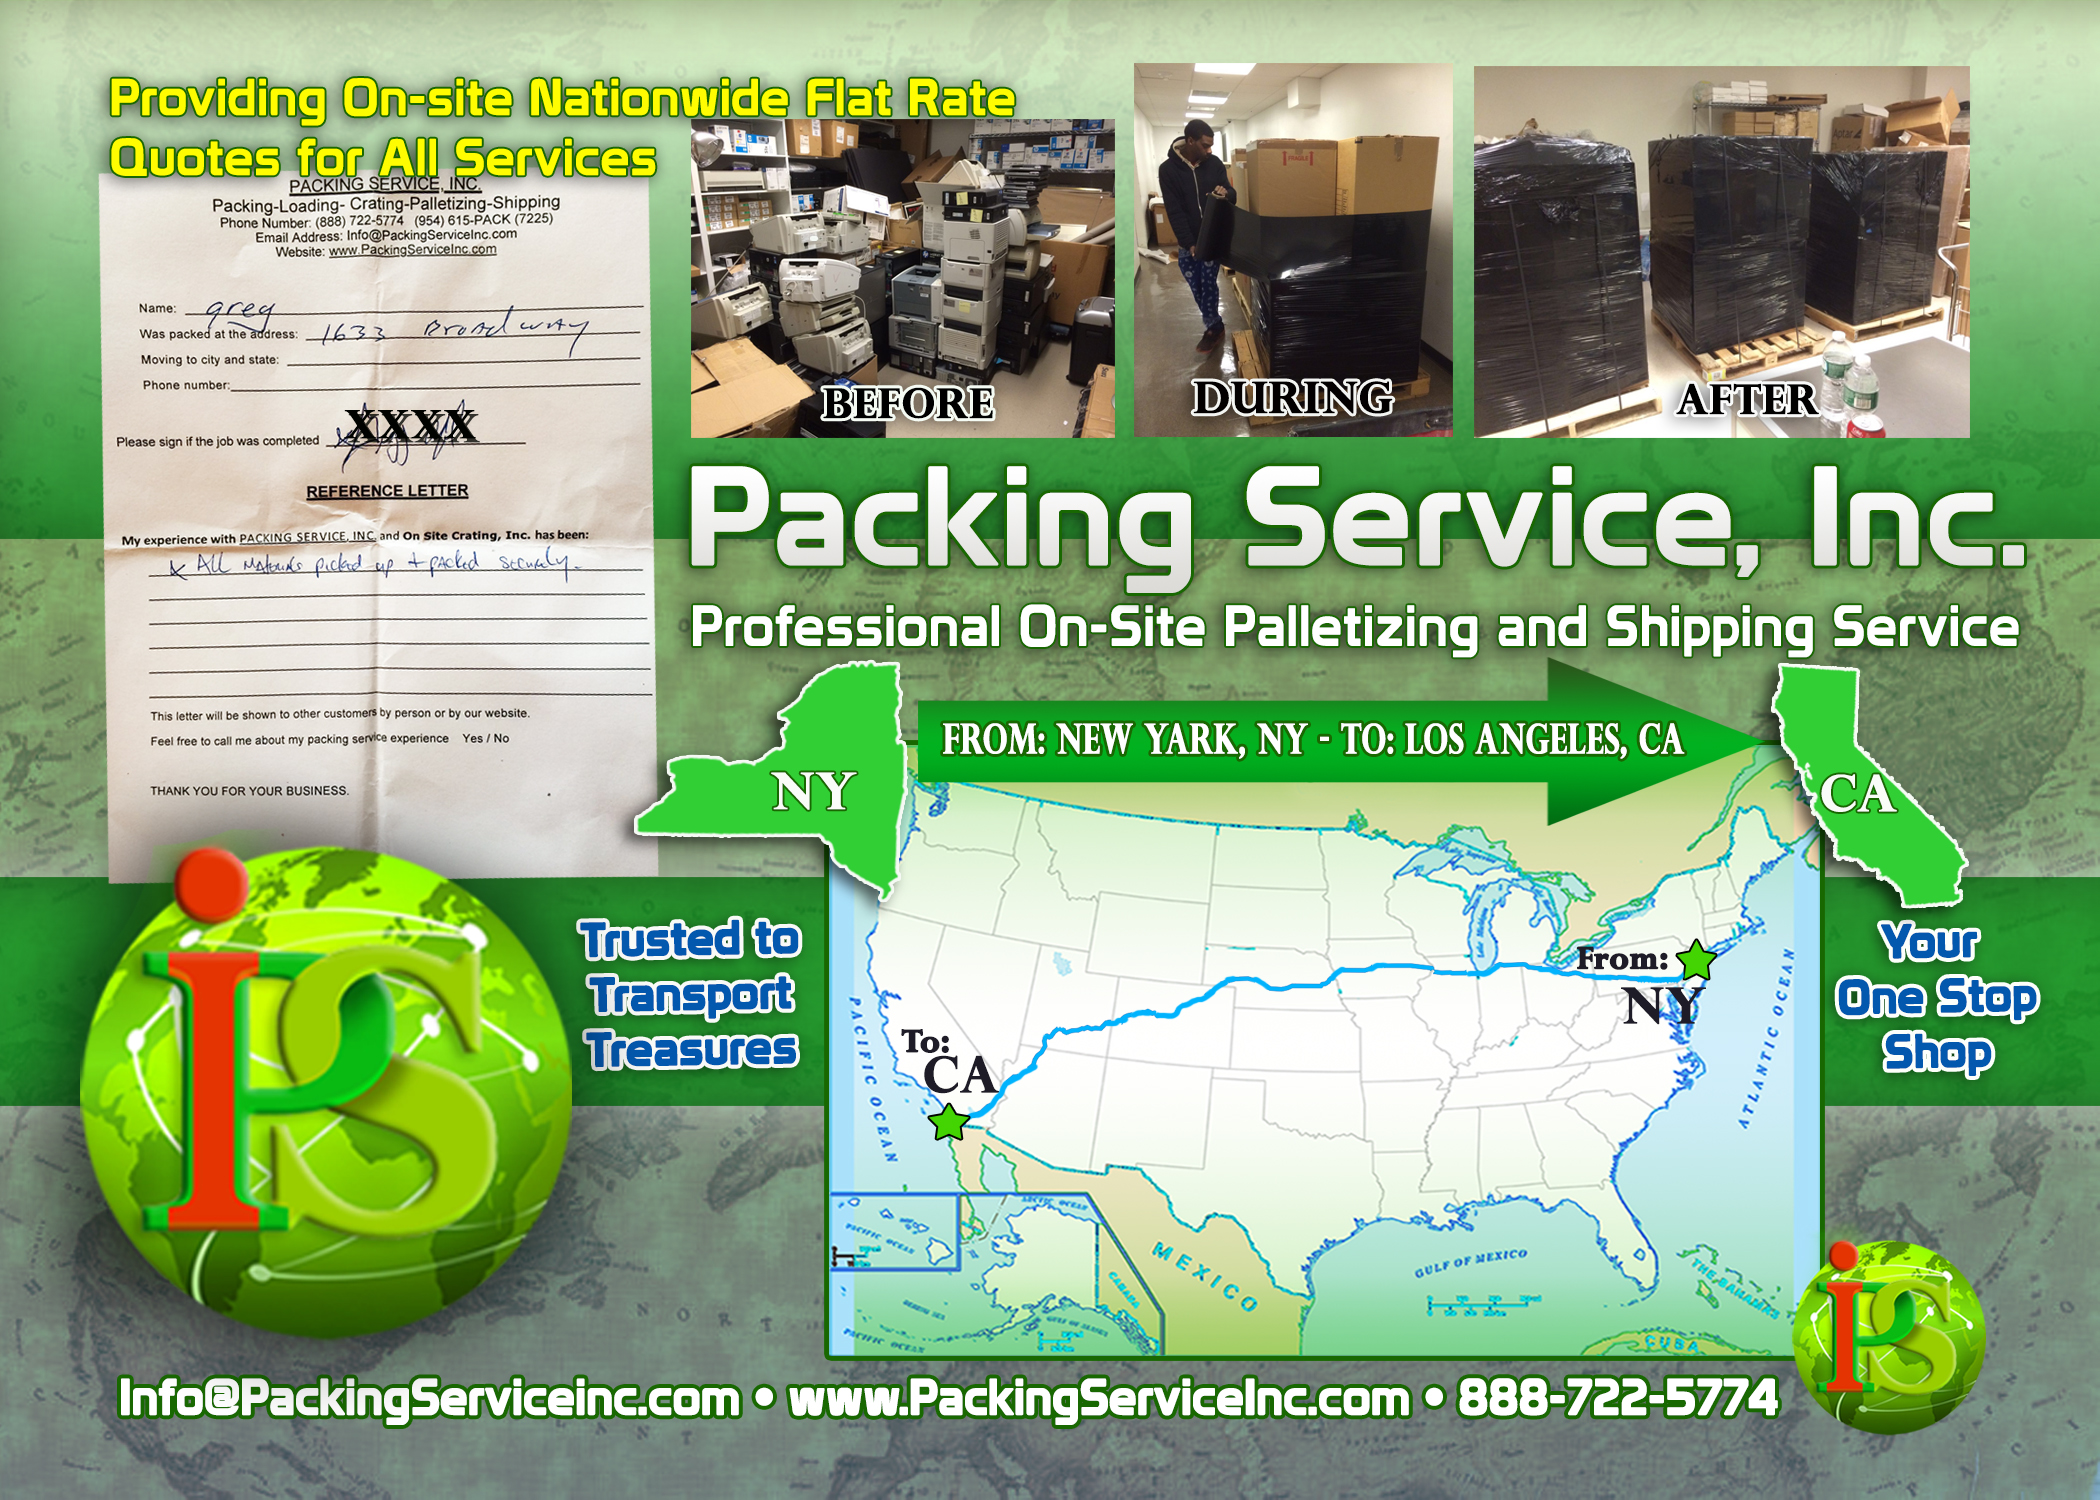 Packing computer items, palletizing services and shipping from NY to CA with Packing Service, Inc. 2